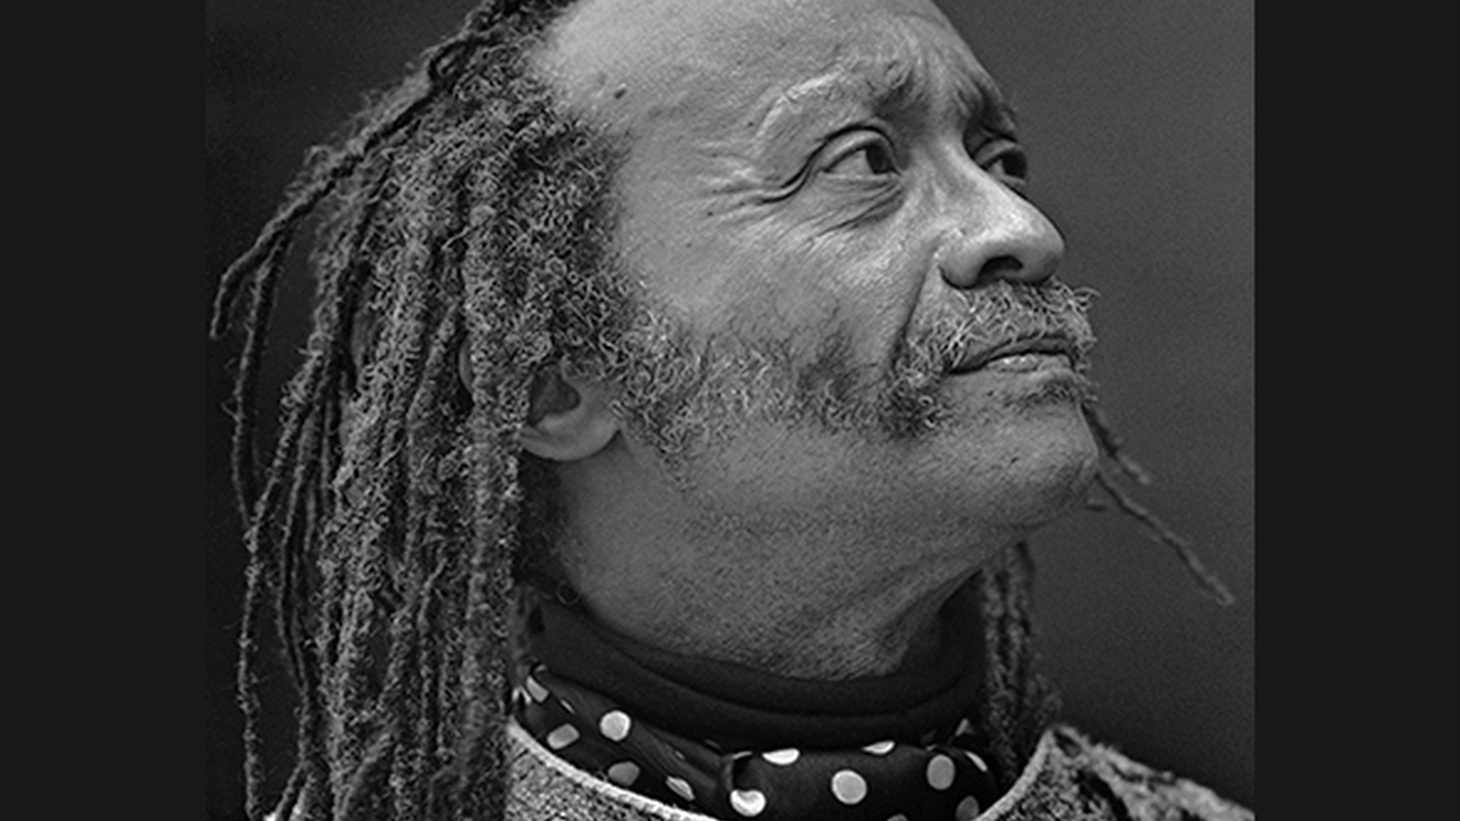 The avant garde jazz pianist Cecil Taylor died on April 5, 2018 at the age of 89.He had the poise and confidence of a classically-trained pianist, but as an improvising artist he burned with a white heat that listeners either loved or hated.